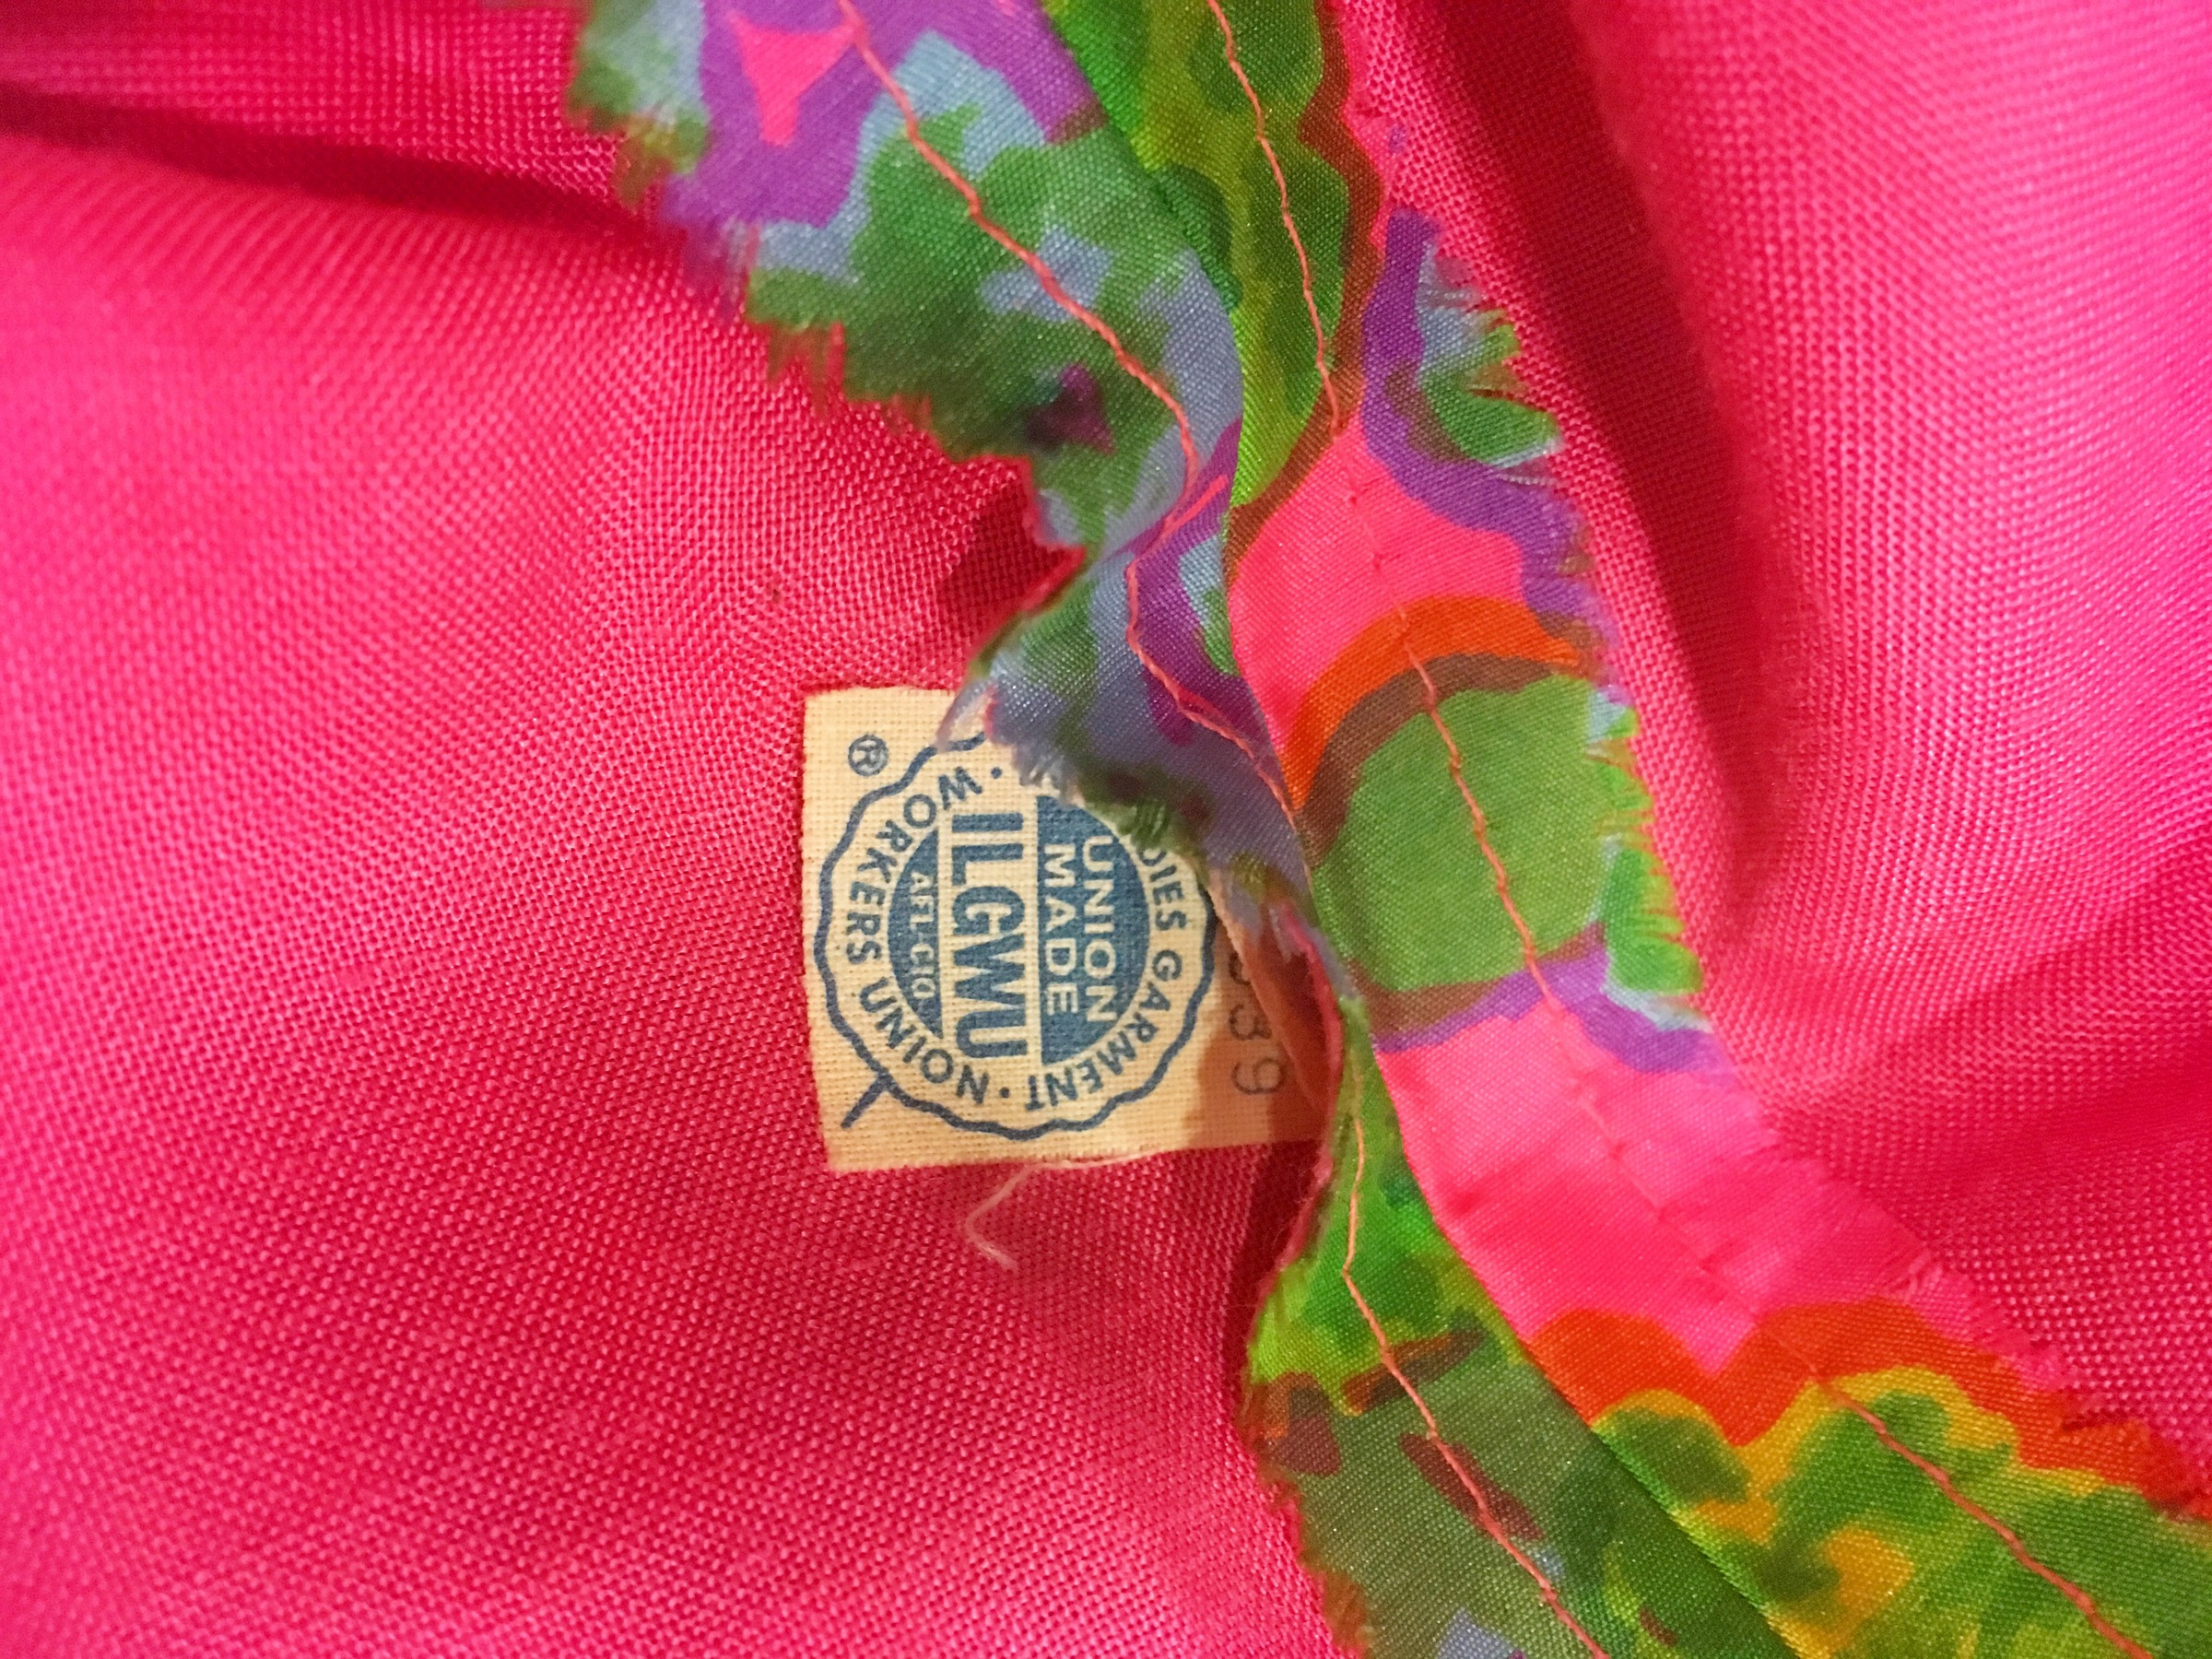 ILGWU tag on the inside of a vintage dress